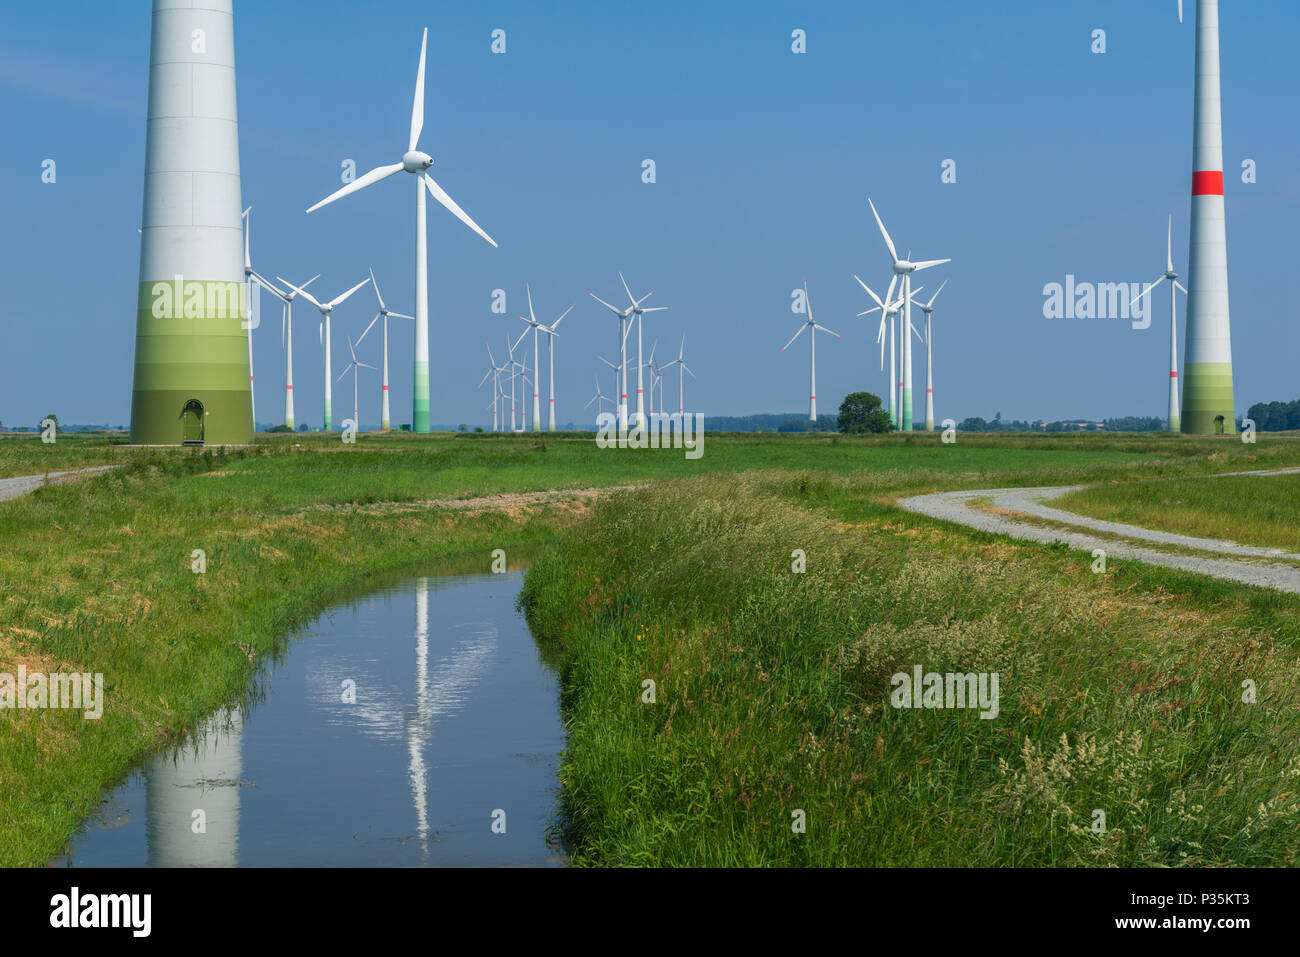 Wind energy park, Westerholt, East Frisia, Lower Saxony, Germany - Stock Image